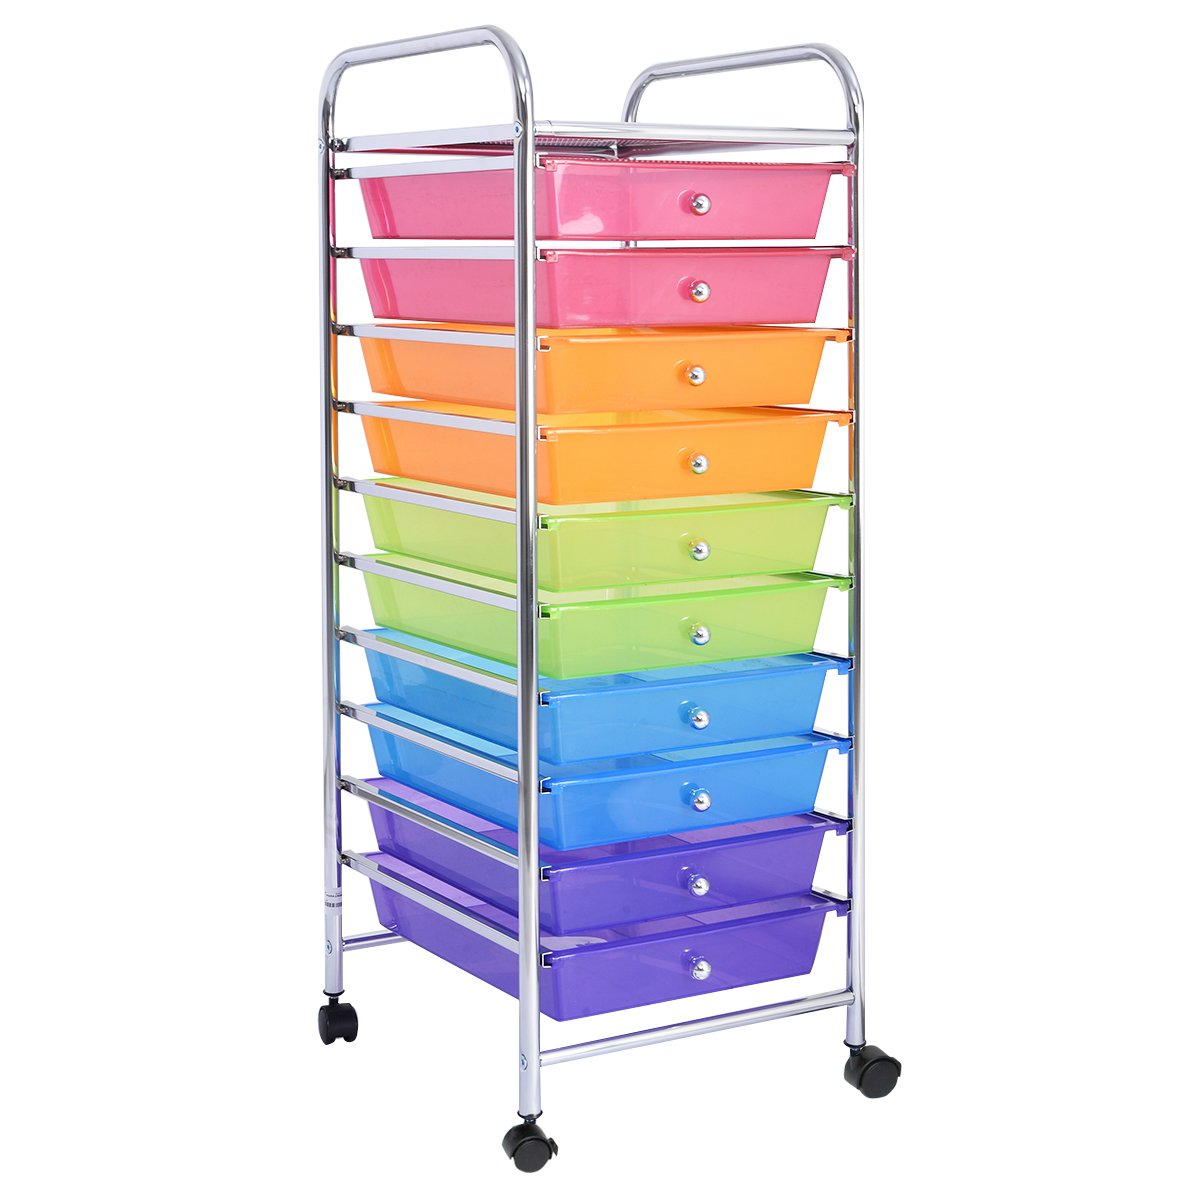 Amazon.com : NEW 10 Drawer Rolling Storage Cart Scrapbook Paper Office  School Organizer Rainbow : Office Products